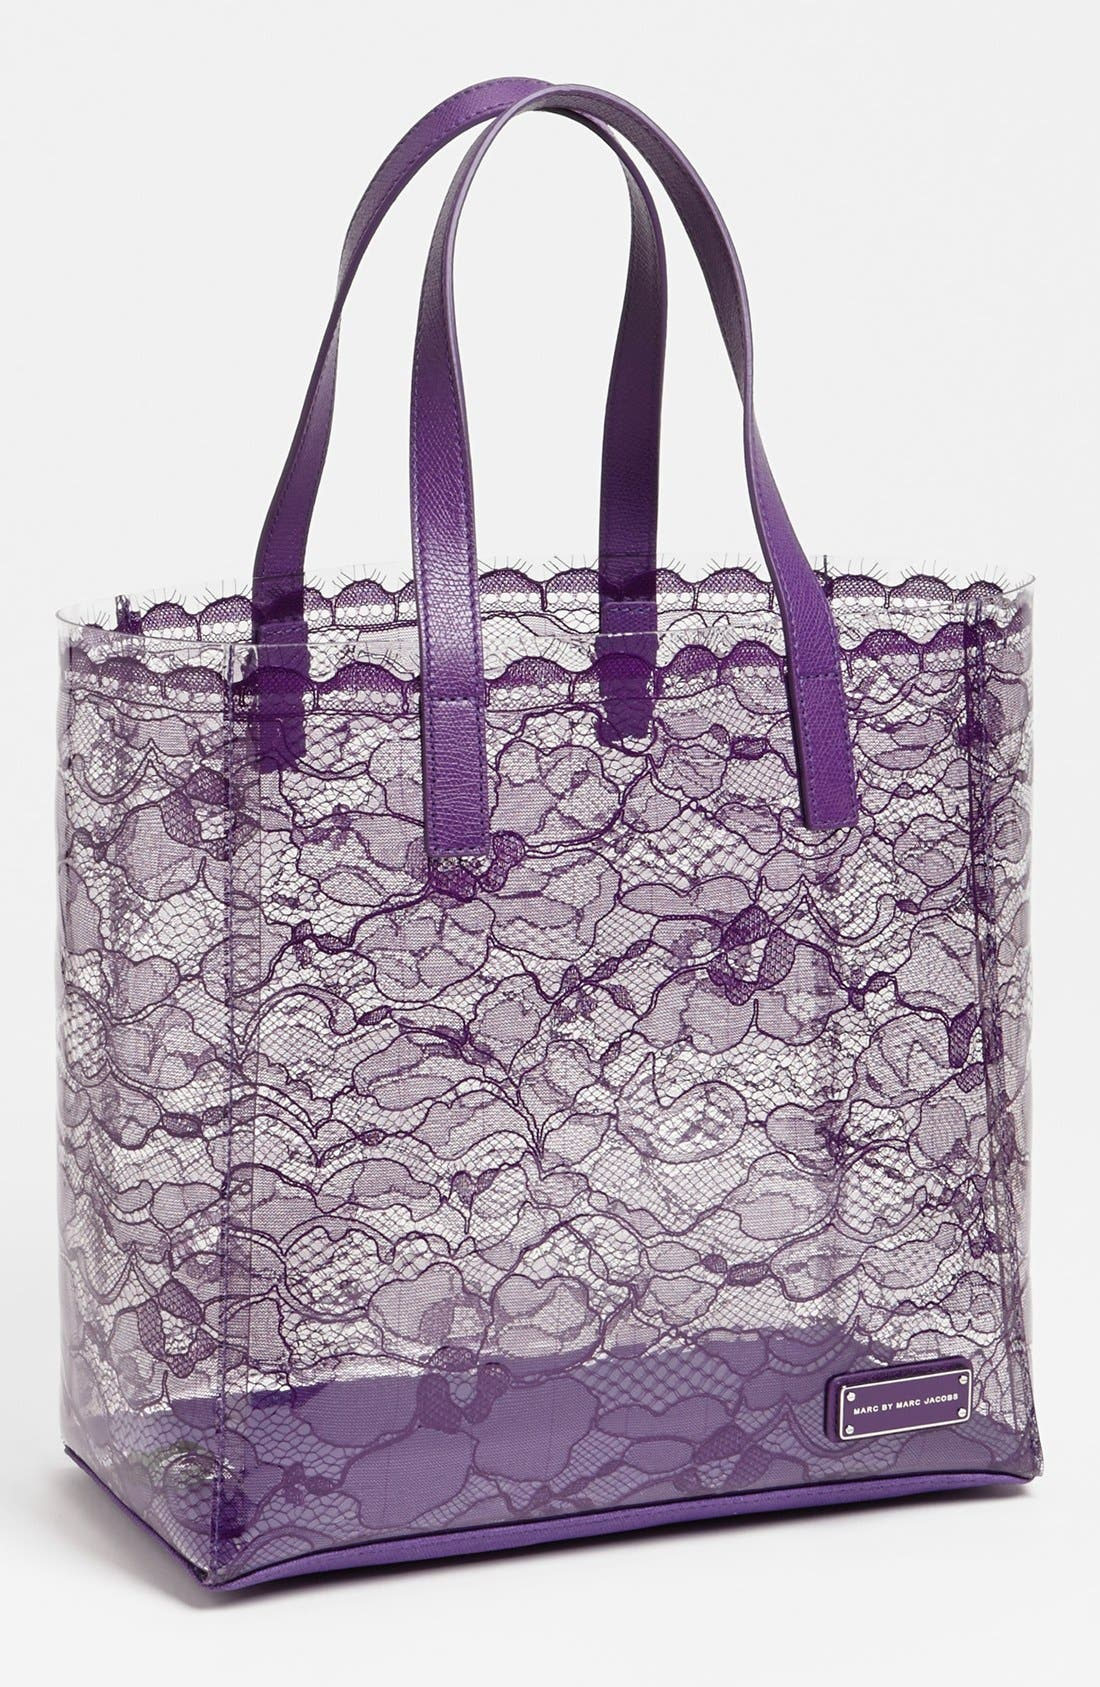 Main Image - MARC BY MARC JACOBS 'Lace - Medium' Tote